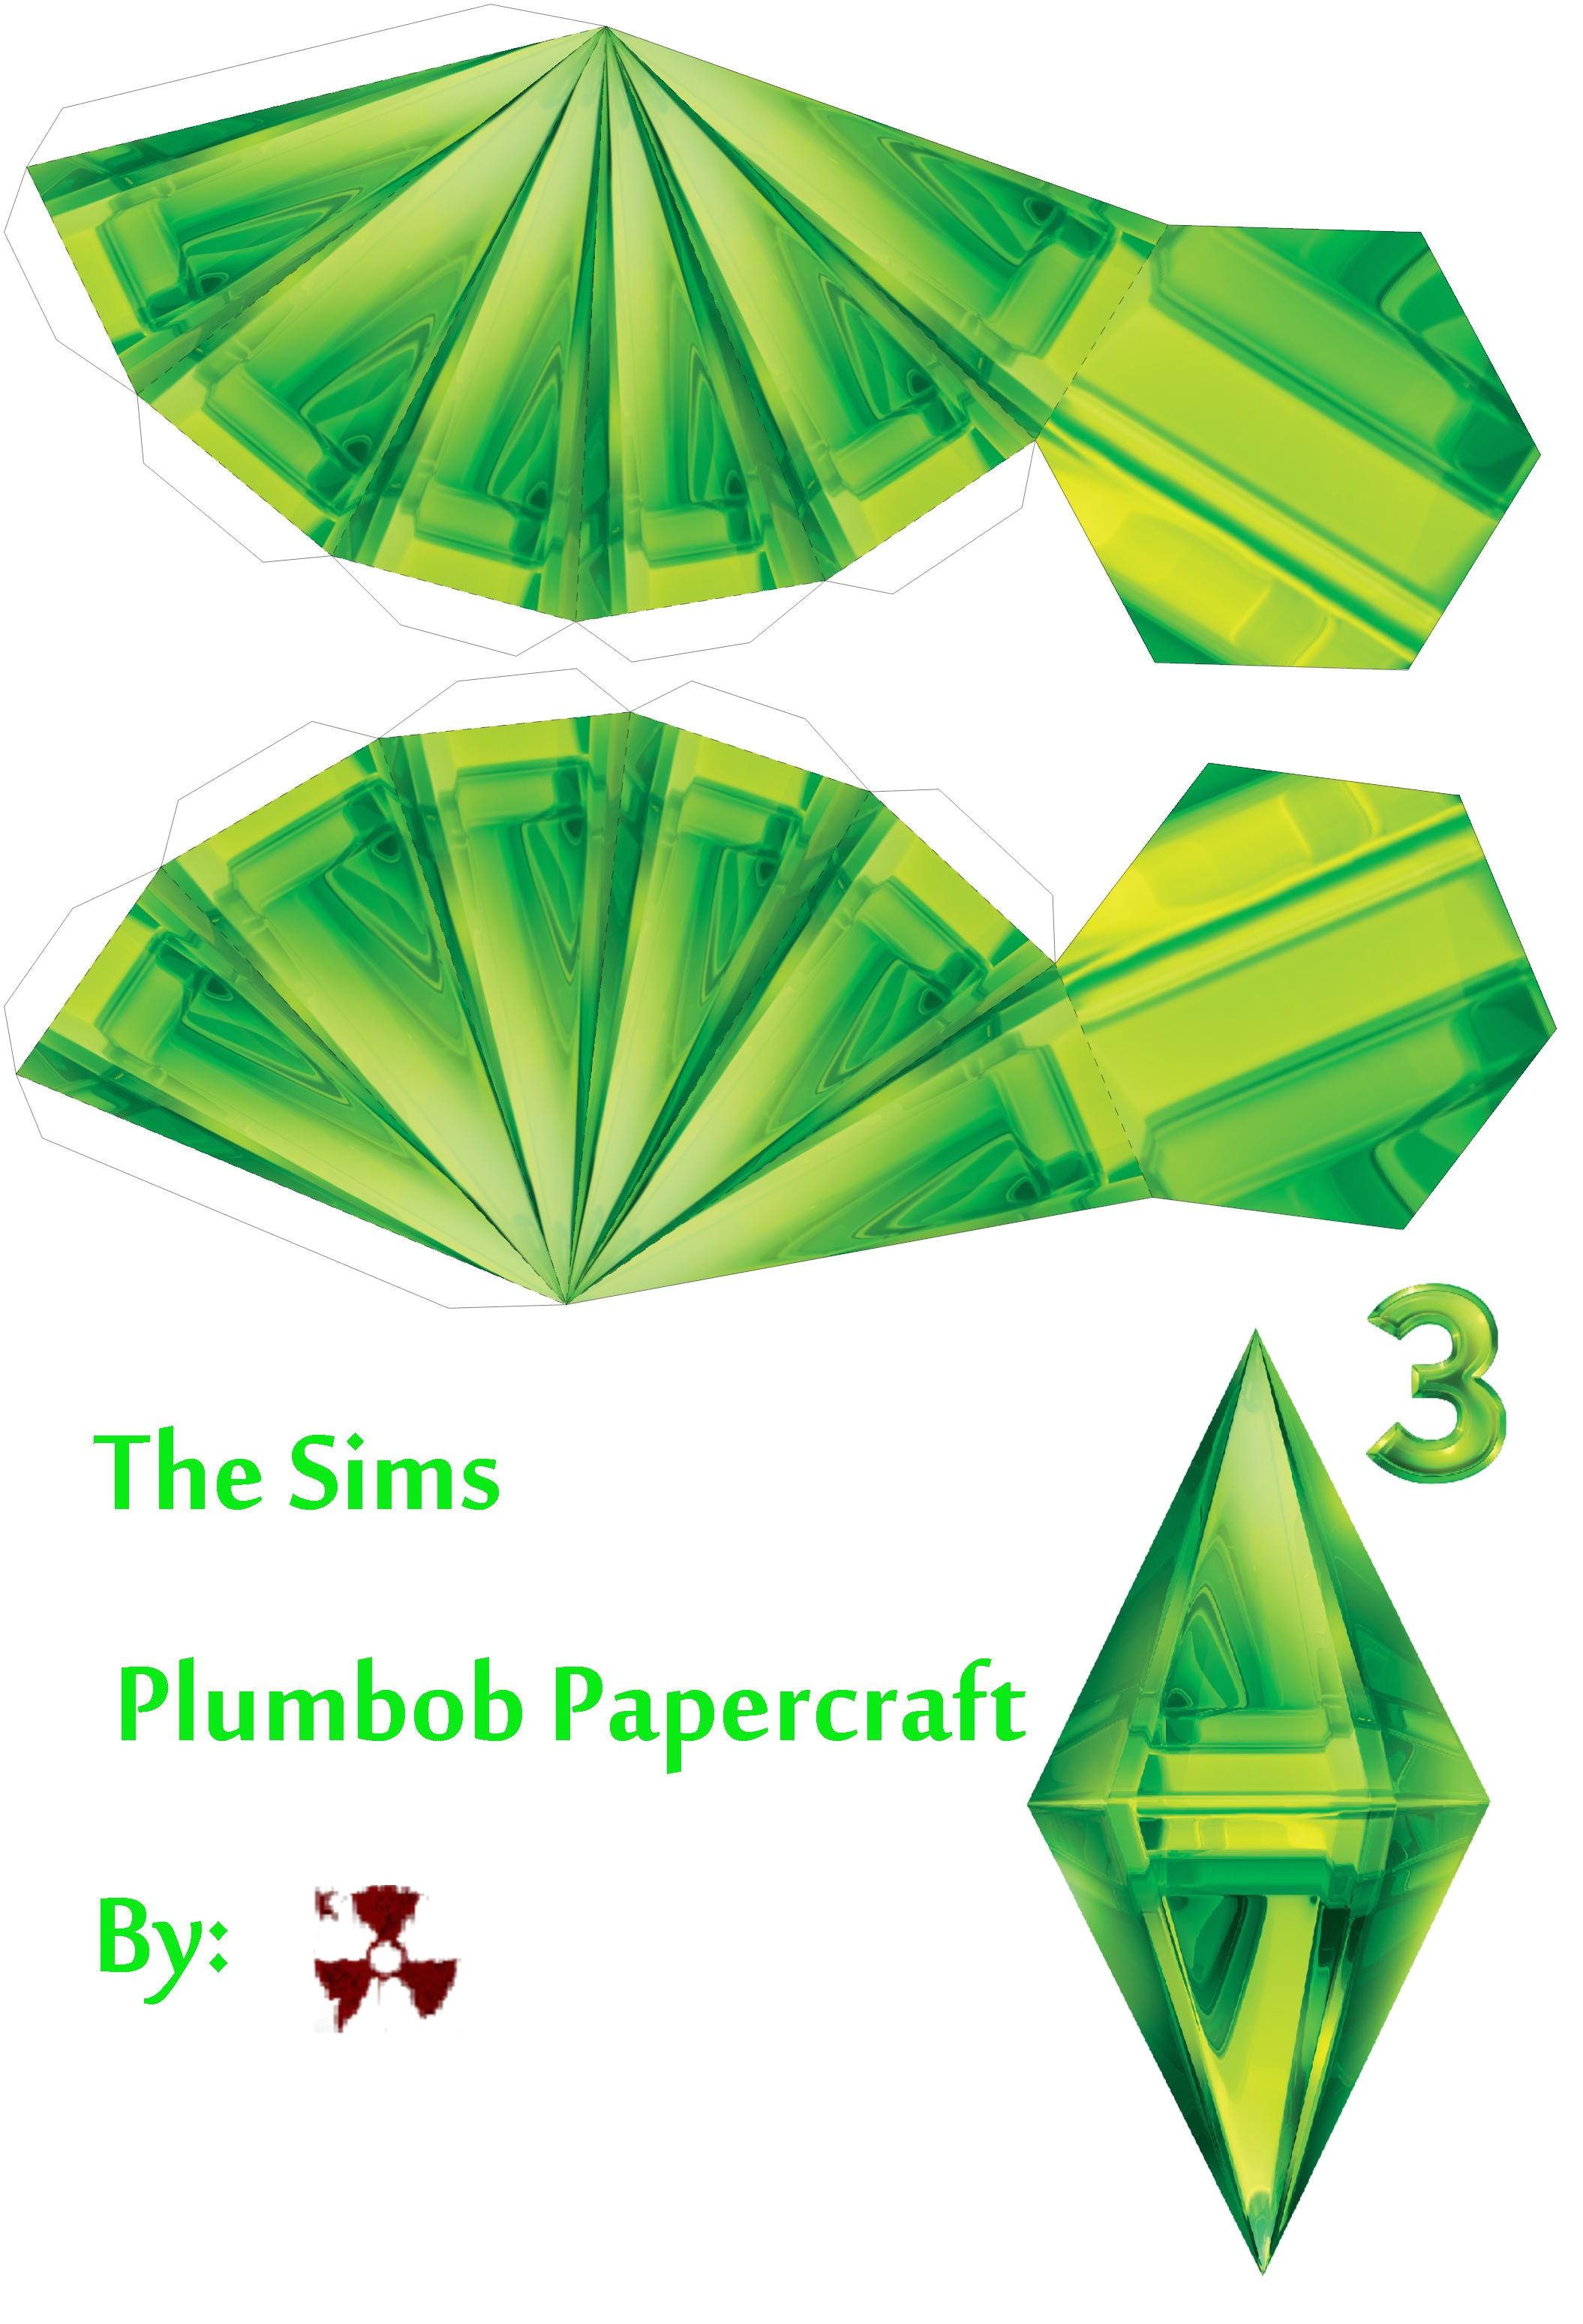 Sims Plumbob Template Quick Fun Improvised Halloween Costume the Sims by Taya